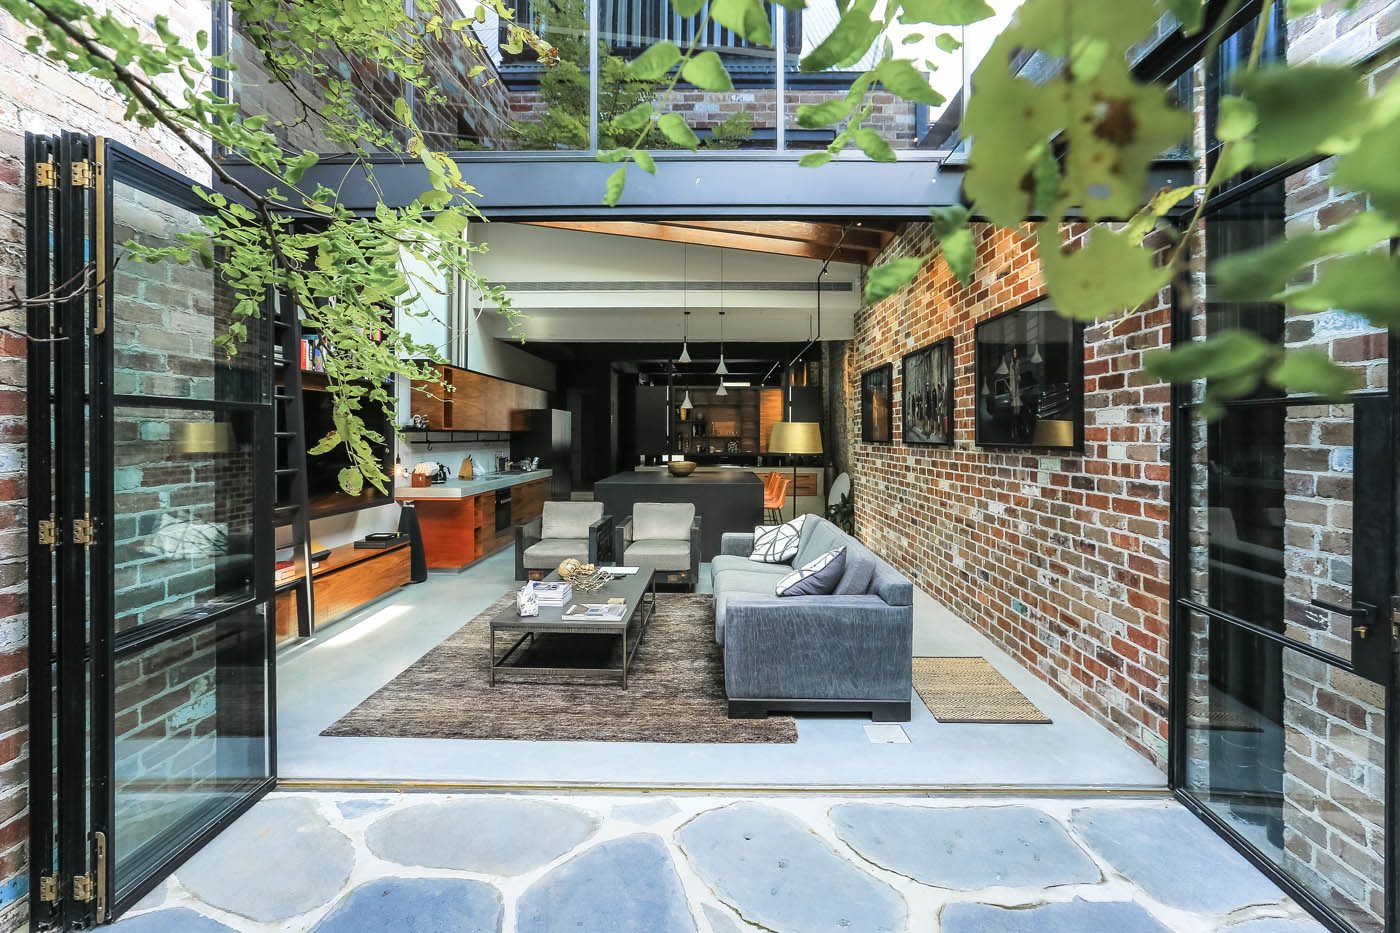 Darlinghurst Warehouse by award winning Sydney residential architecture firm Sam Crawford Architects. The transition of grey stone floor provide a continuity from the interior to the courtyard